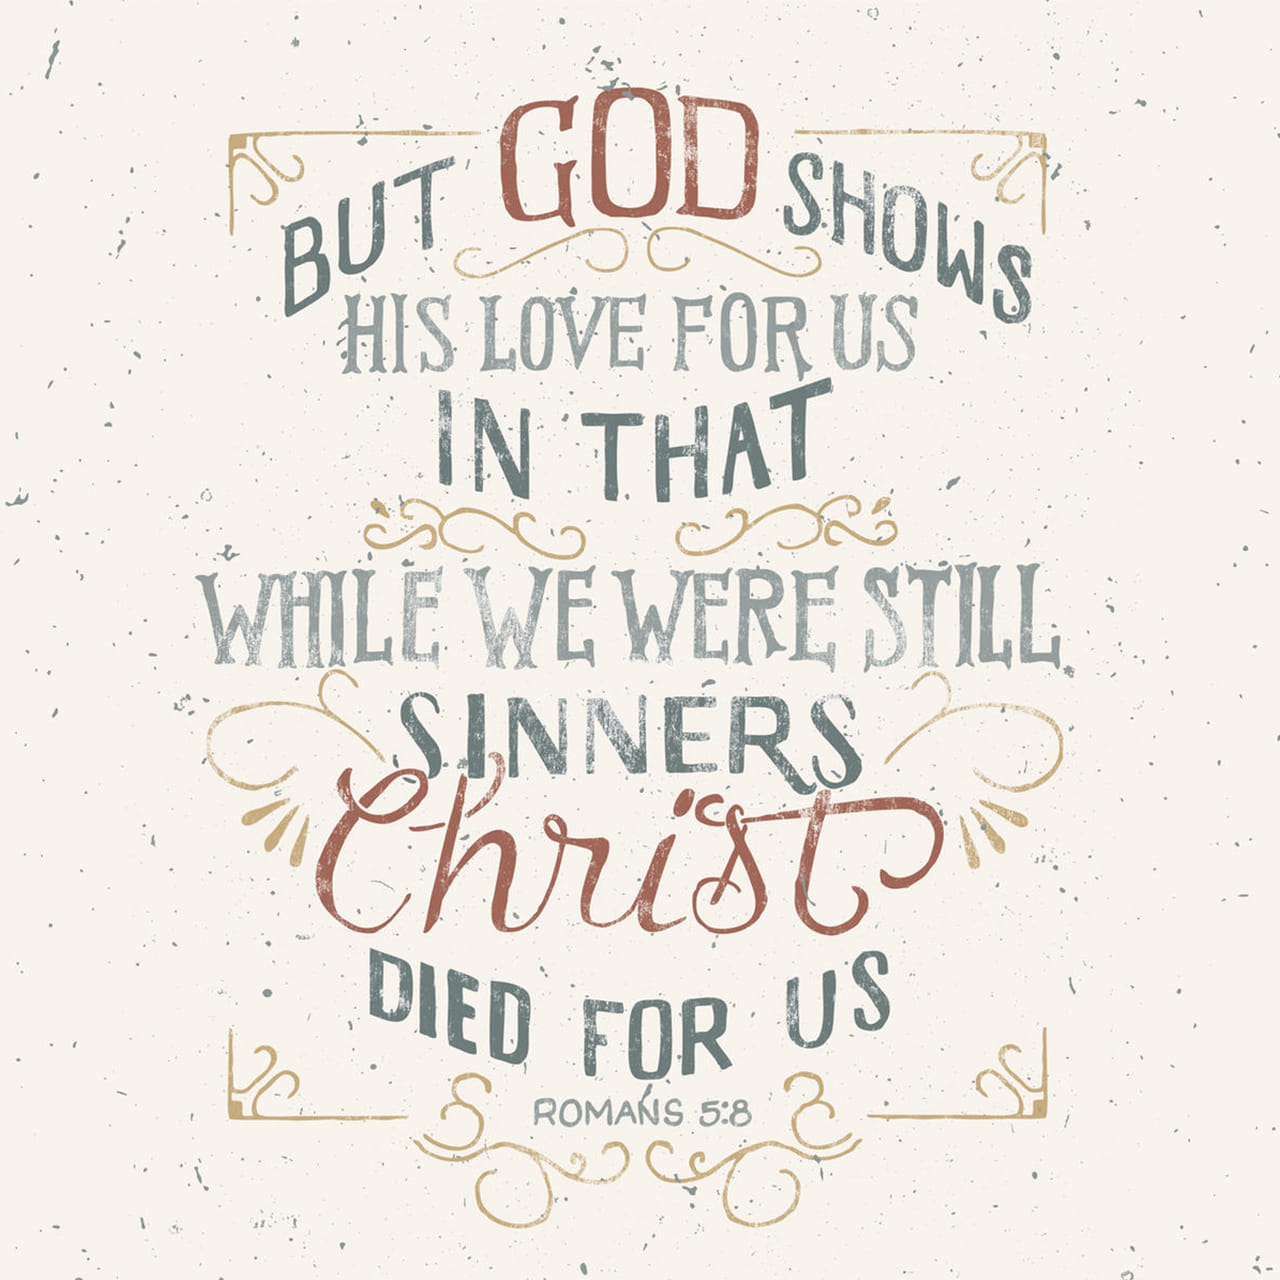 But God demonstrates his own love for us in this: While we were still sinners, Christ died for us. Romans 5:8 NIV https://romans.bible/romans-5-8